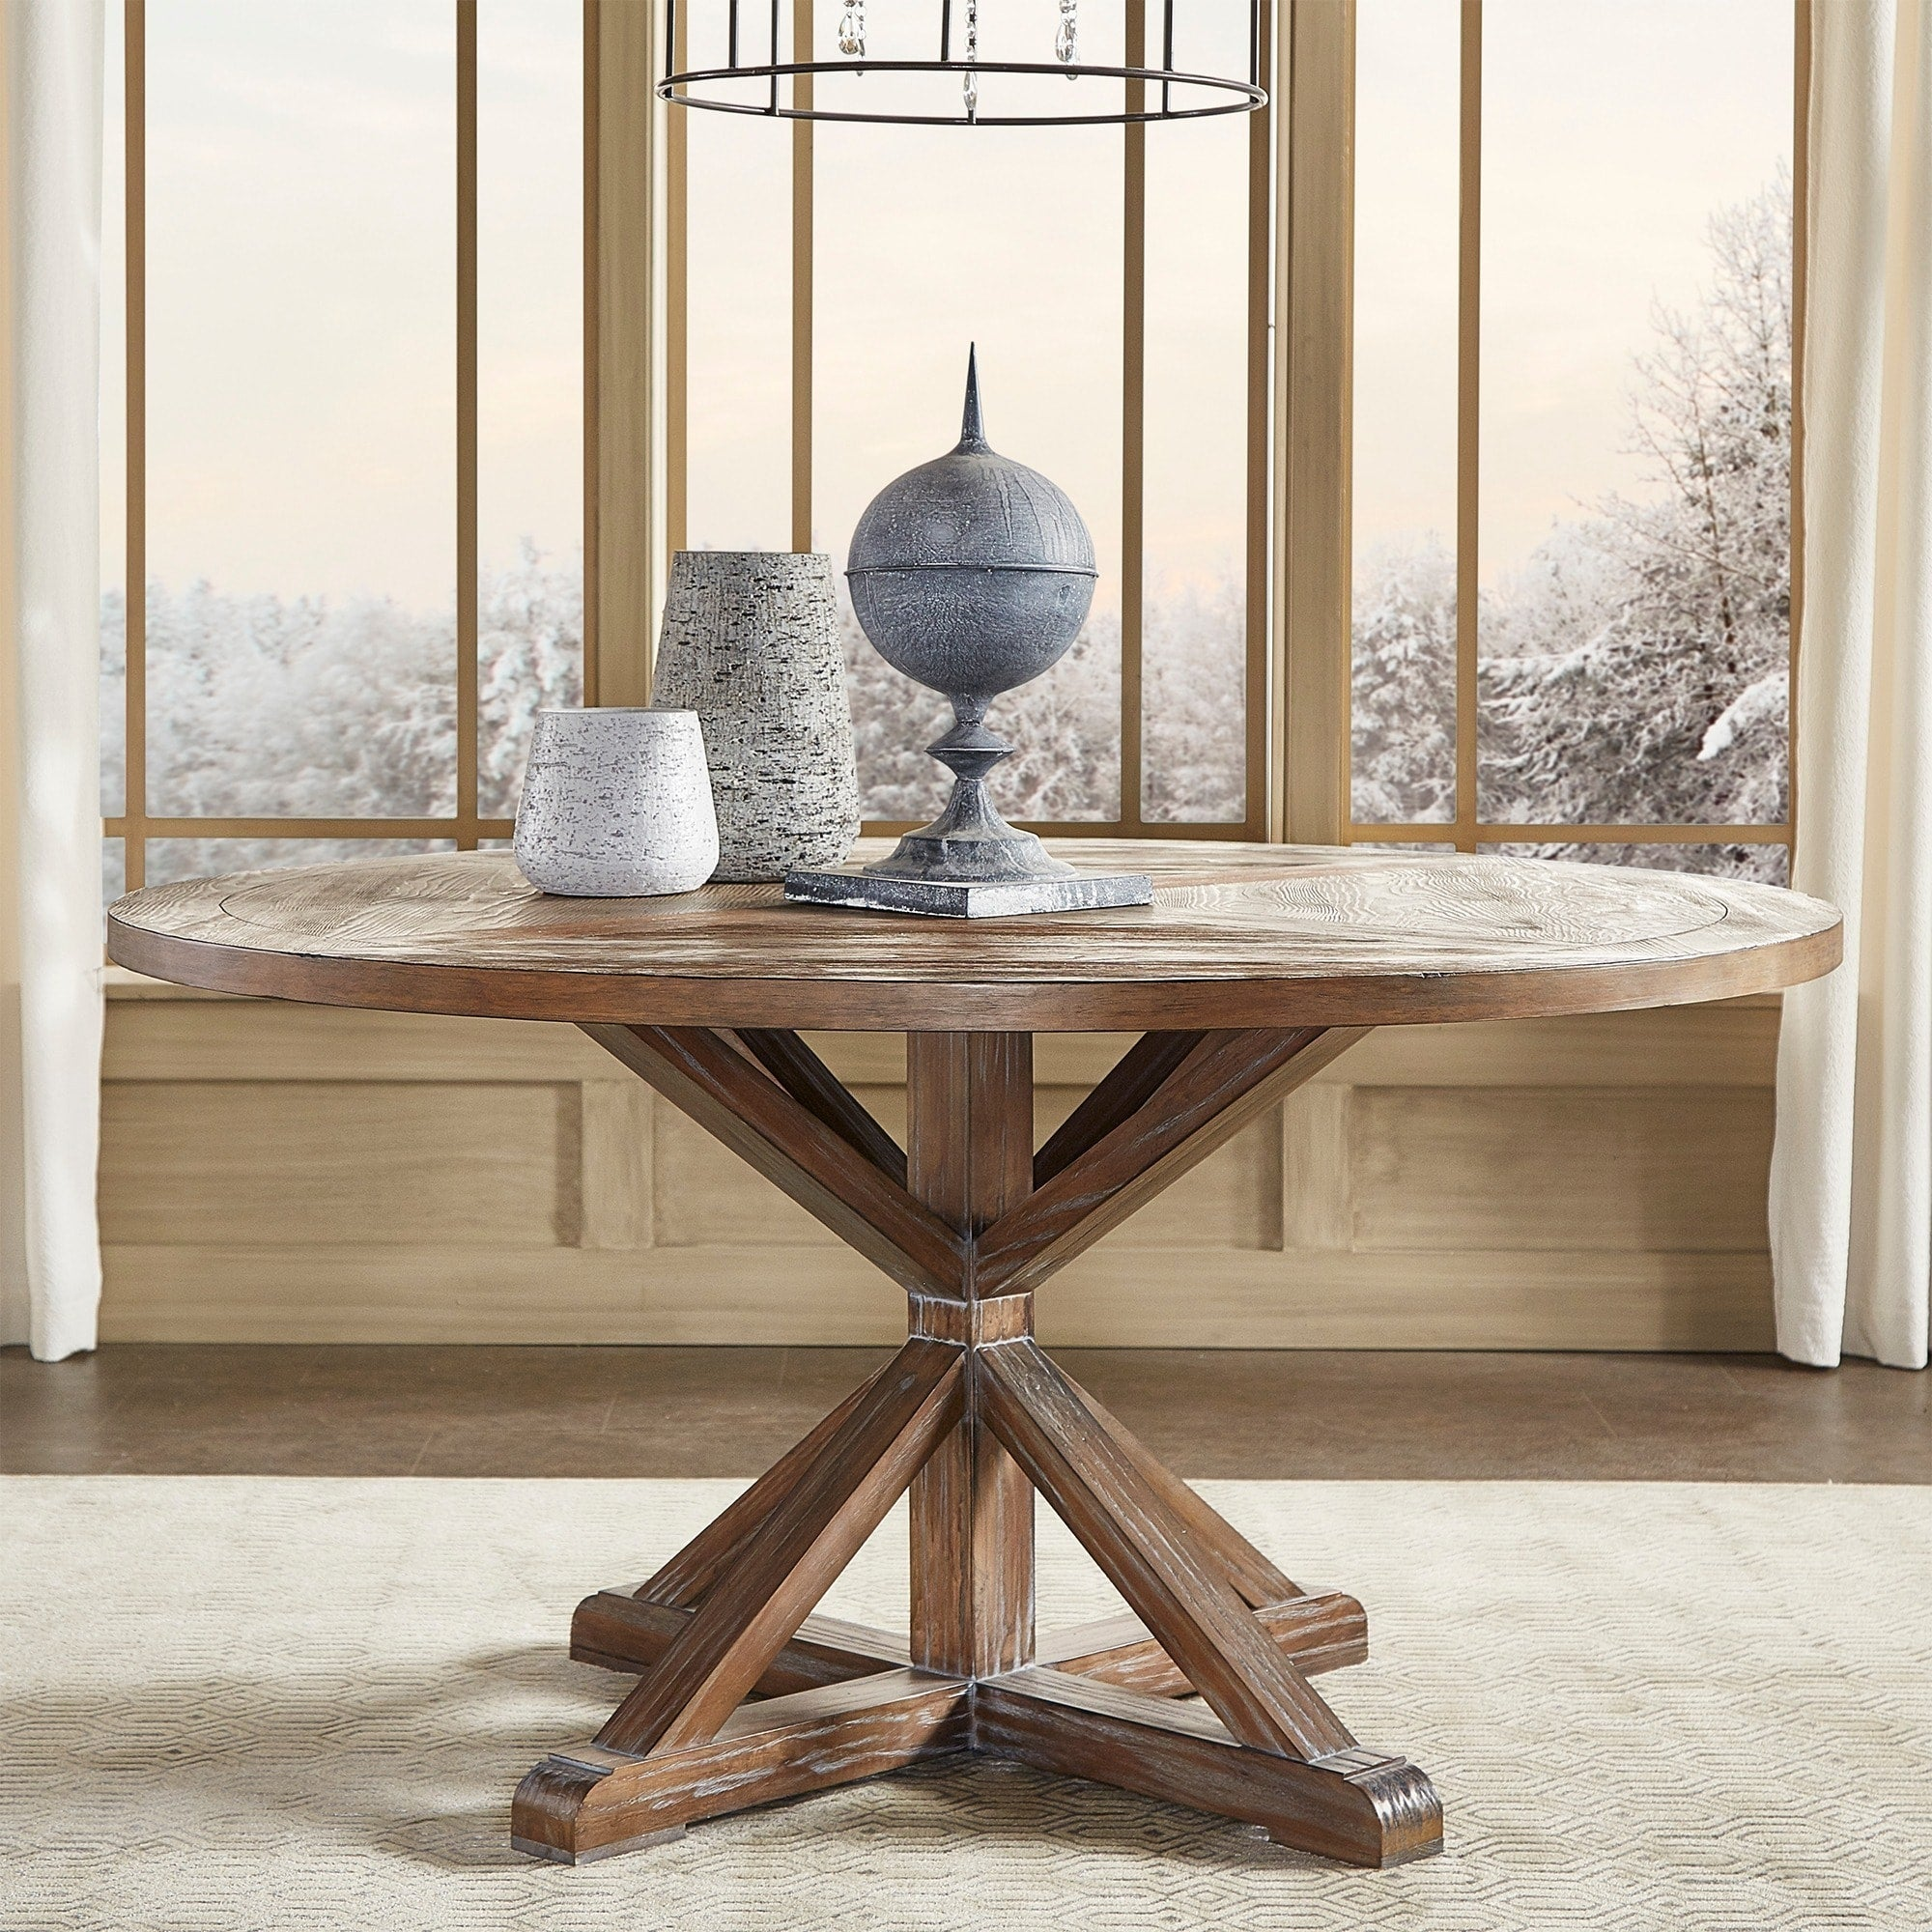 Rustic x base round pine wood dining table